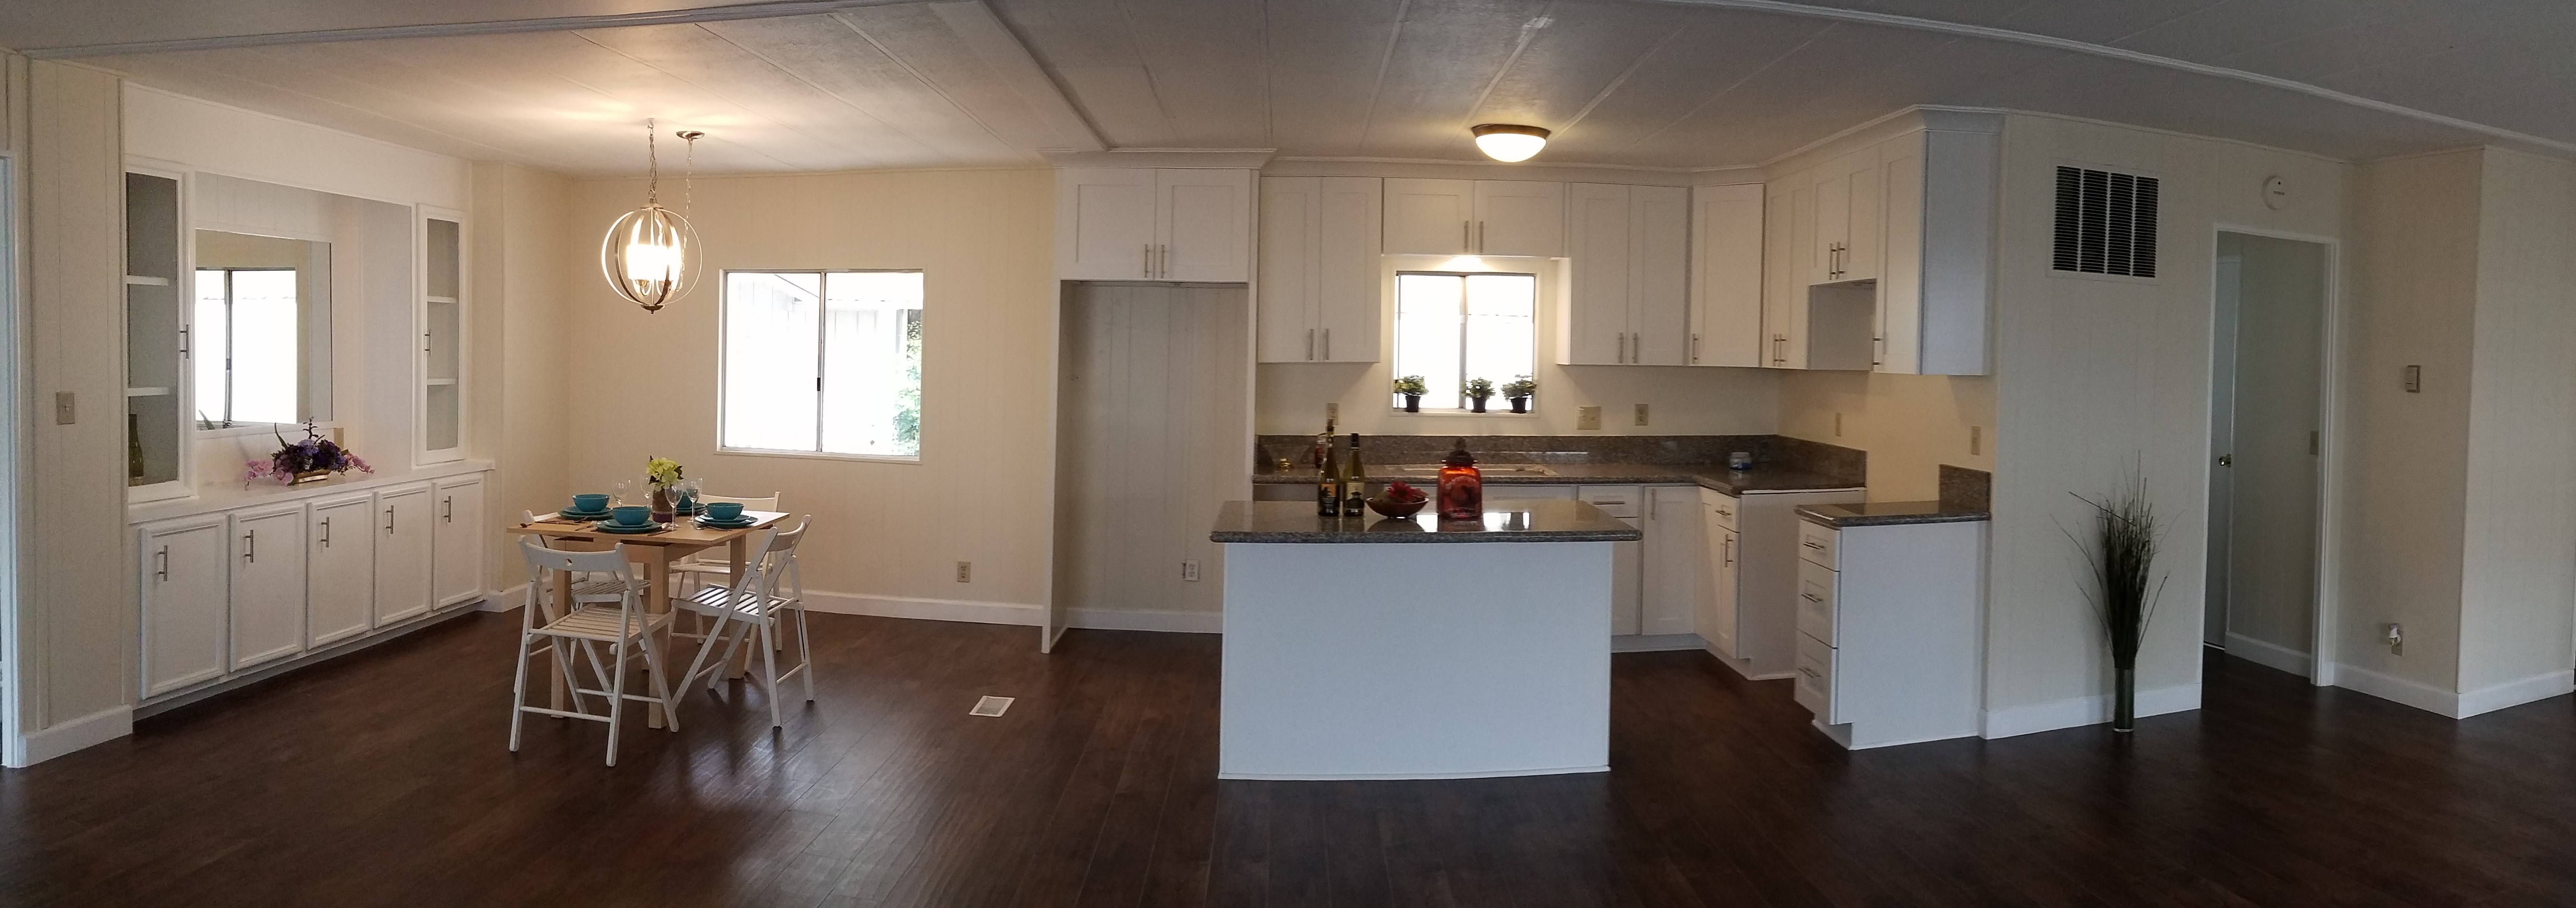 Mobile homes for sale in orange county ca - Green_river_304 _wide_3 Jpg